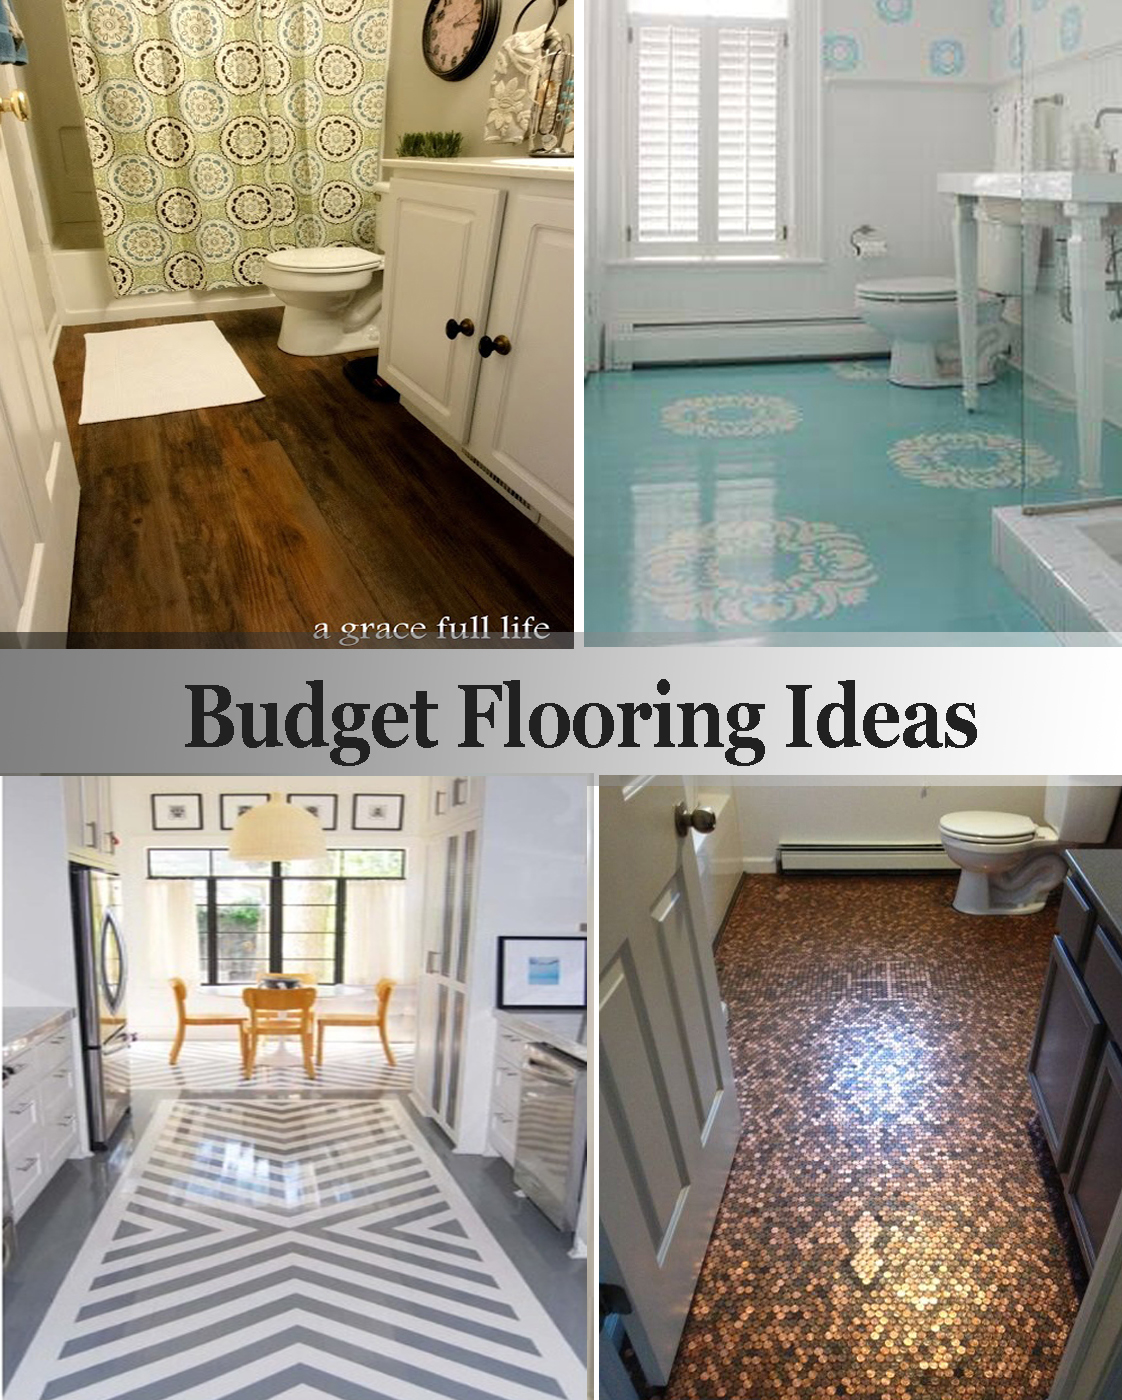 Budget flooring ideas for Diy kitchen floor ideas